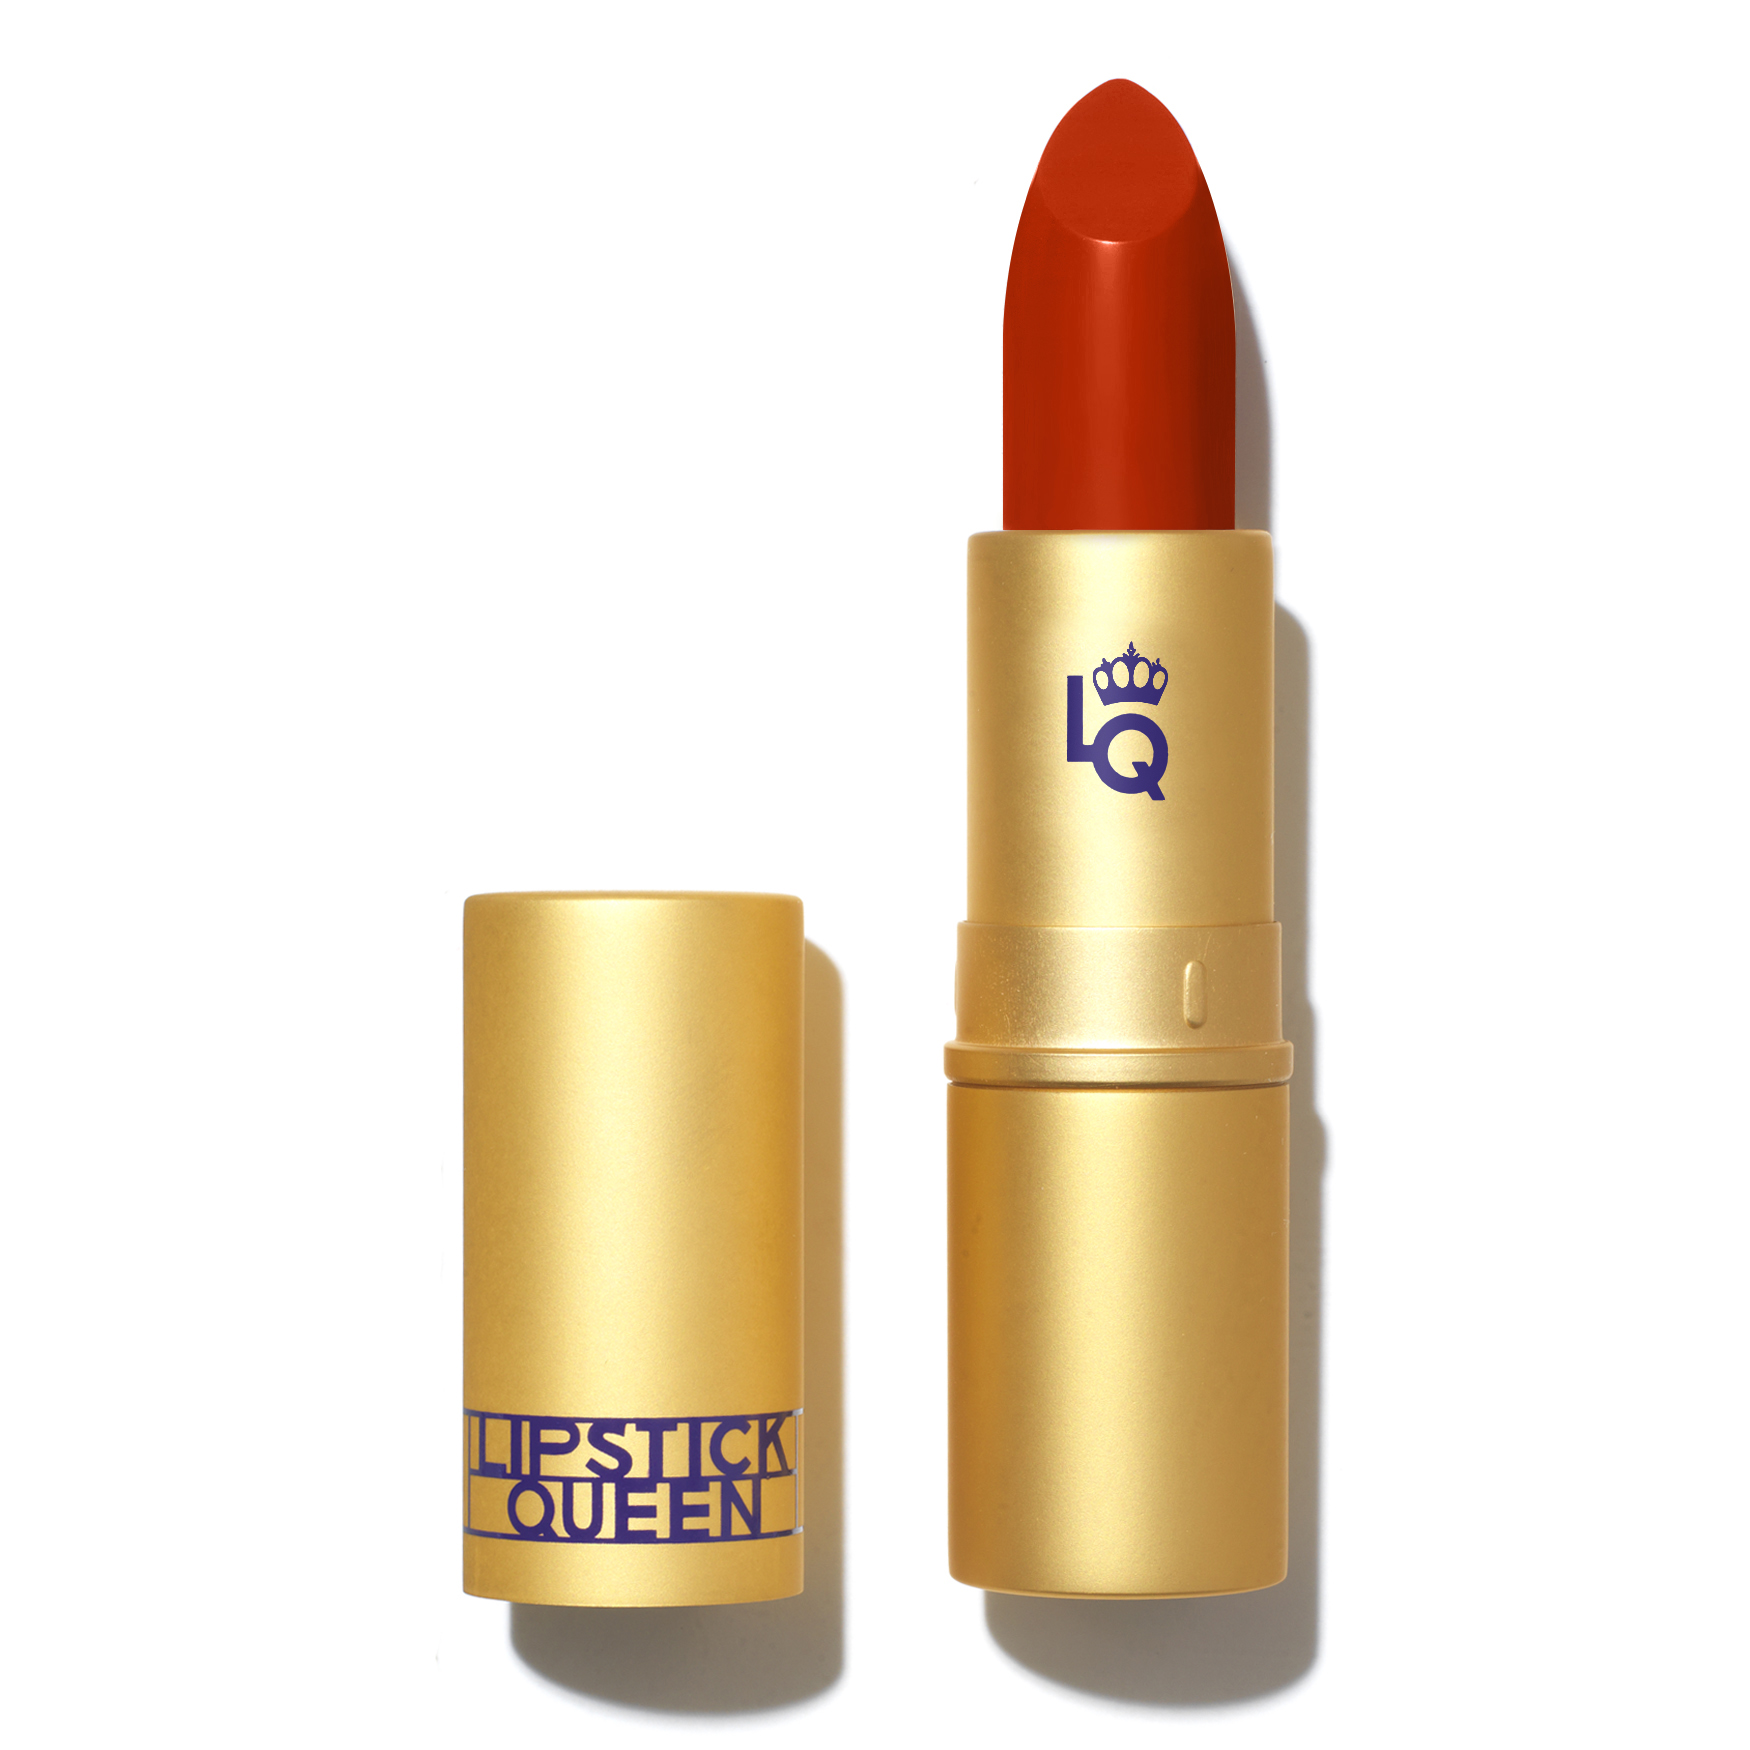 Saint Lipstick, CORAL RED, large